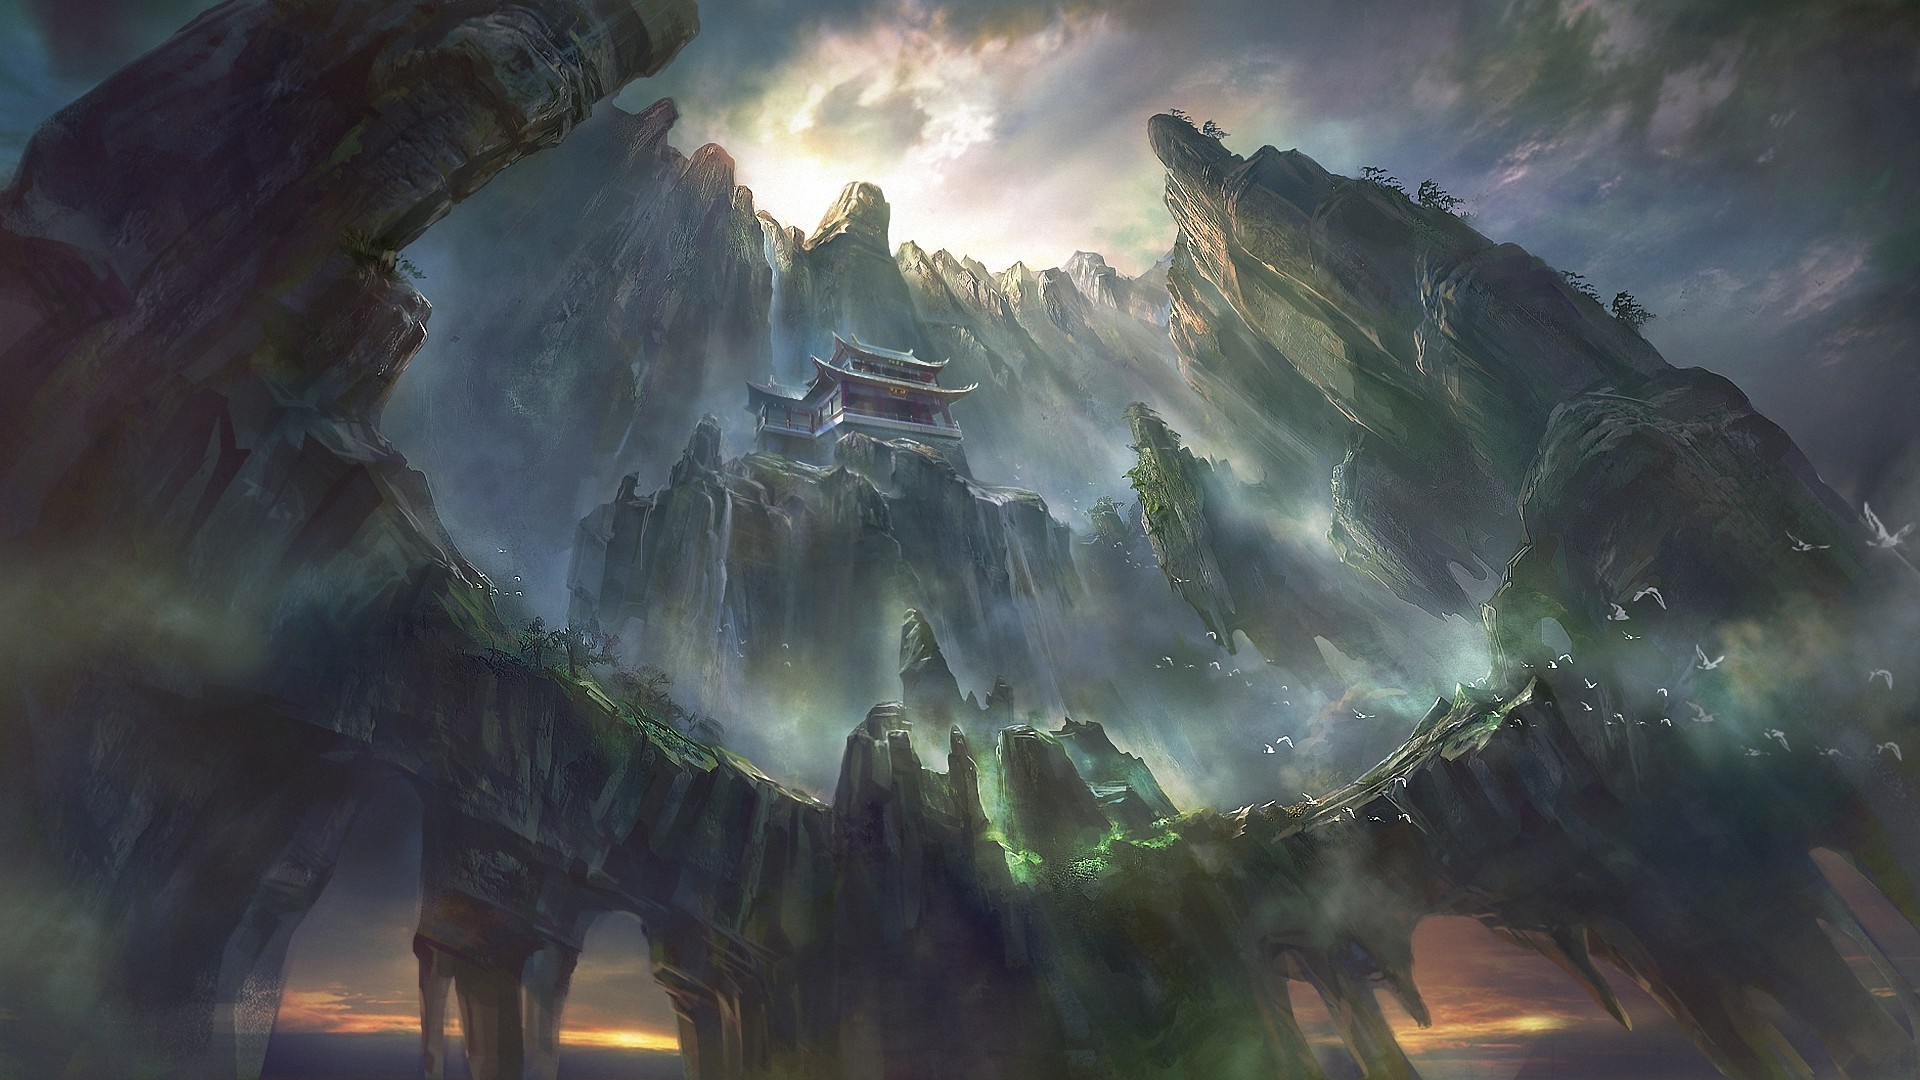 artwork, Fantasy Art, Pagoda, Asian Architecture, Mountain, Waterfall,  Digital Art, Rock Formation Wallpapers HD / Desktop and Mobile Backgrounds